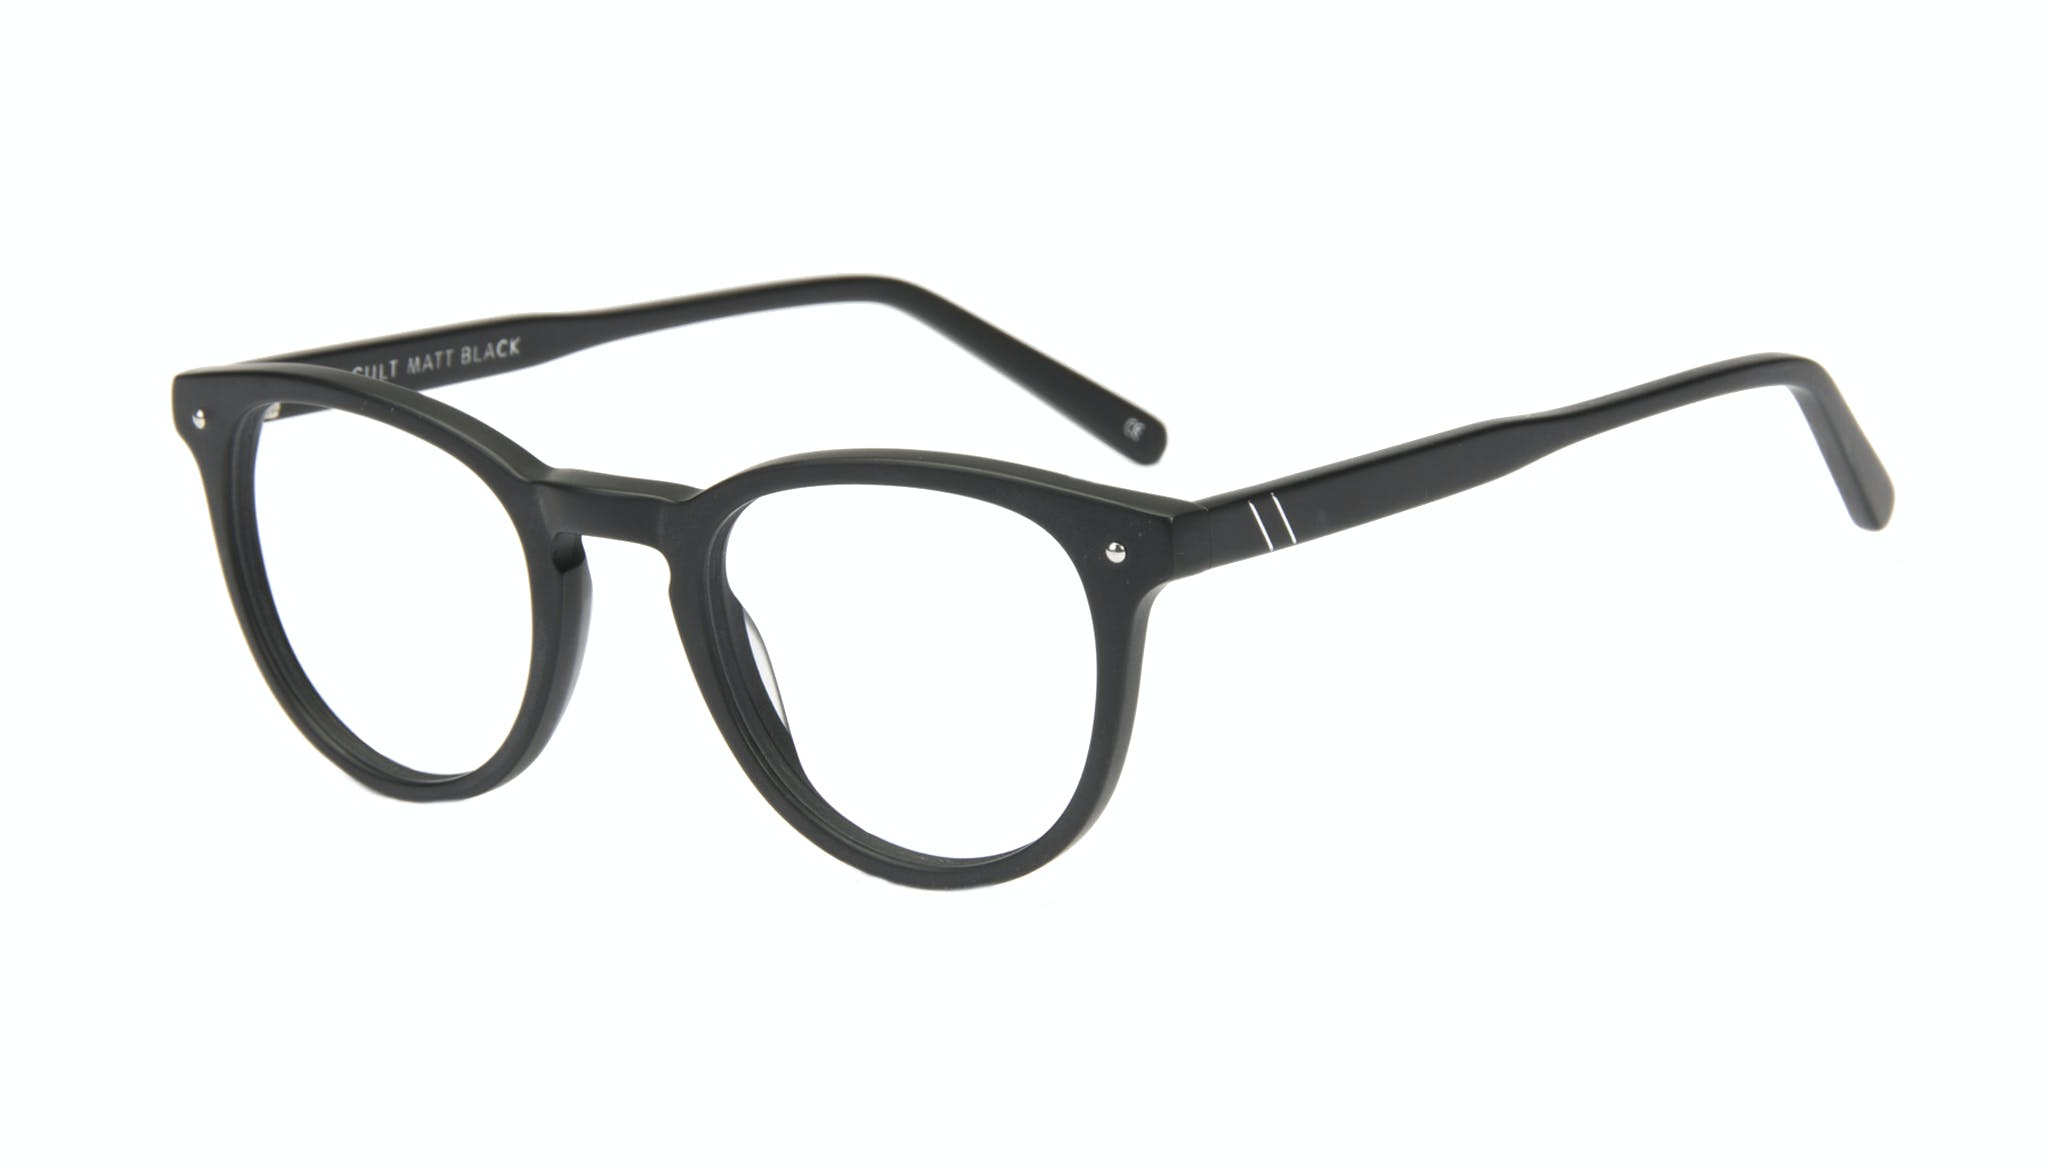 Affordable Fashion Glasses Round Eyeglasses Men Cult Matte Black Tilt